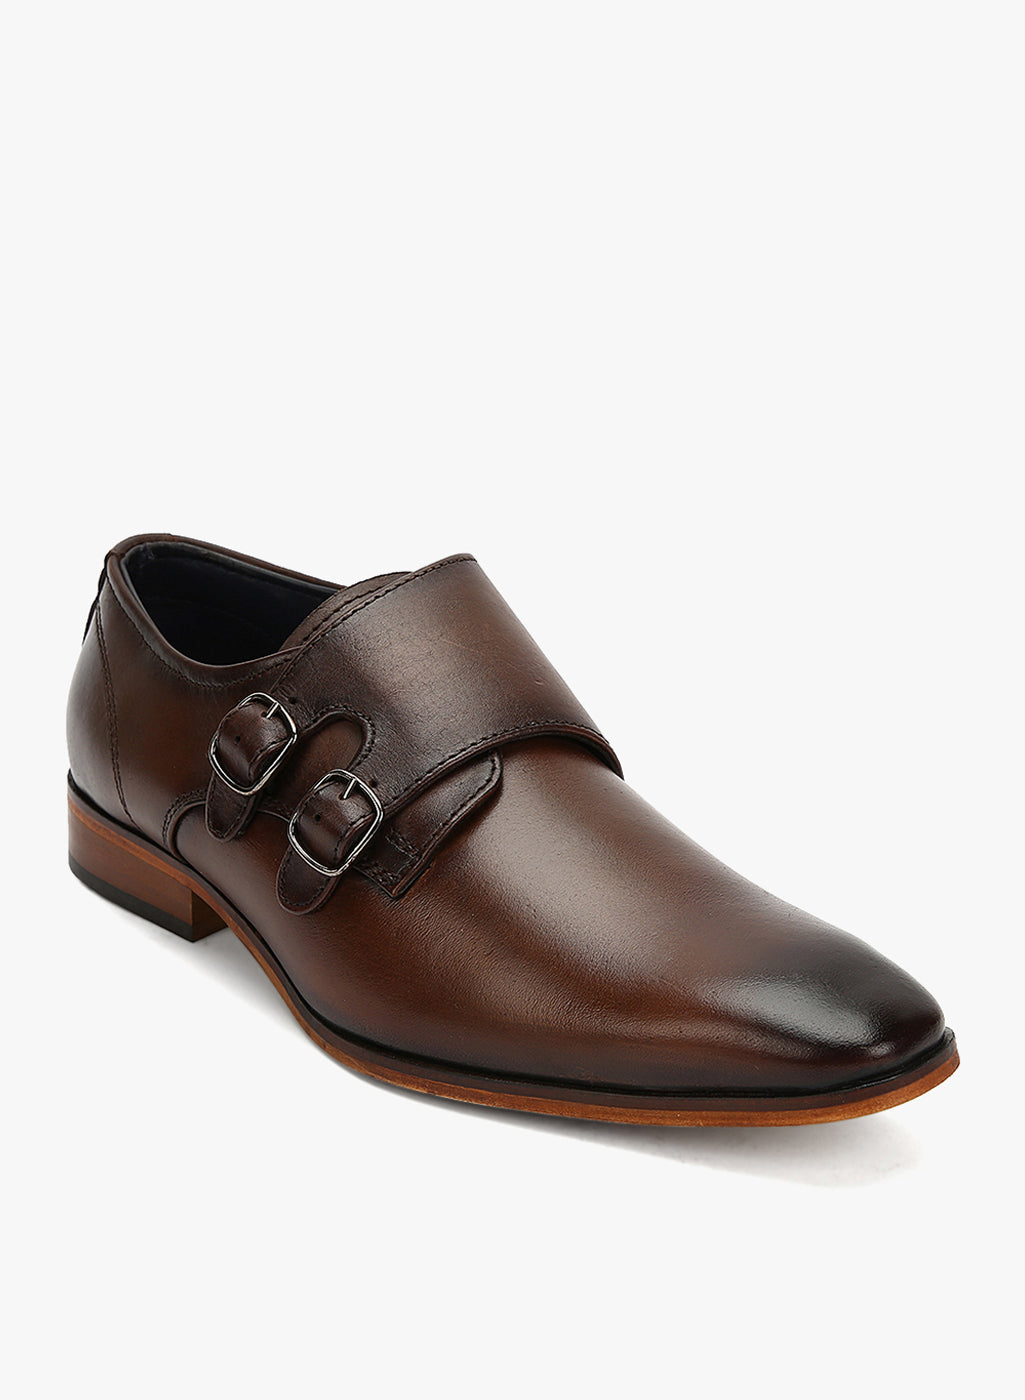 Teakwood Men Genuine Leather Double-Strap Monk Shoes